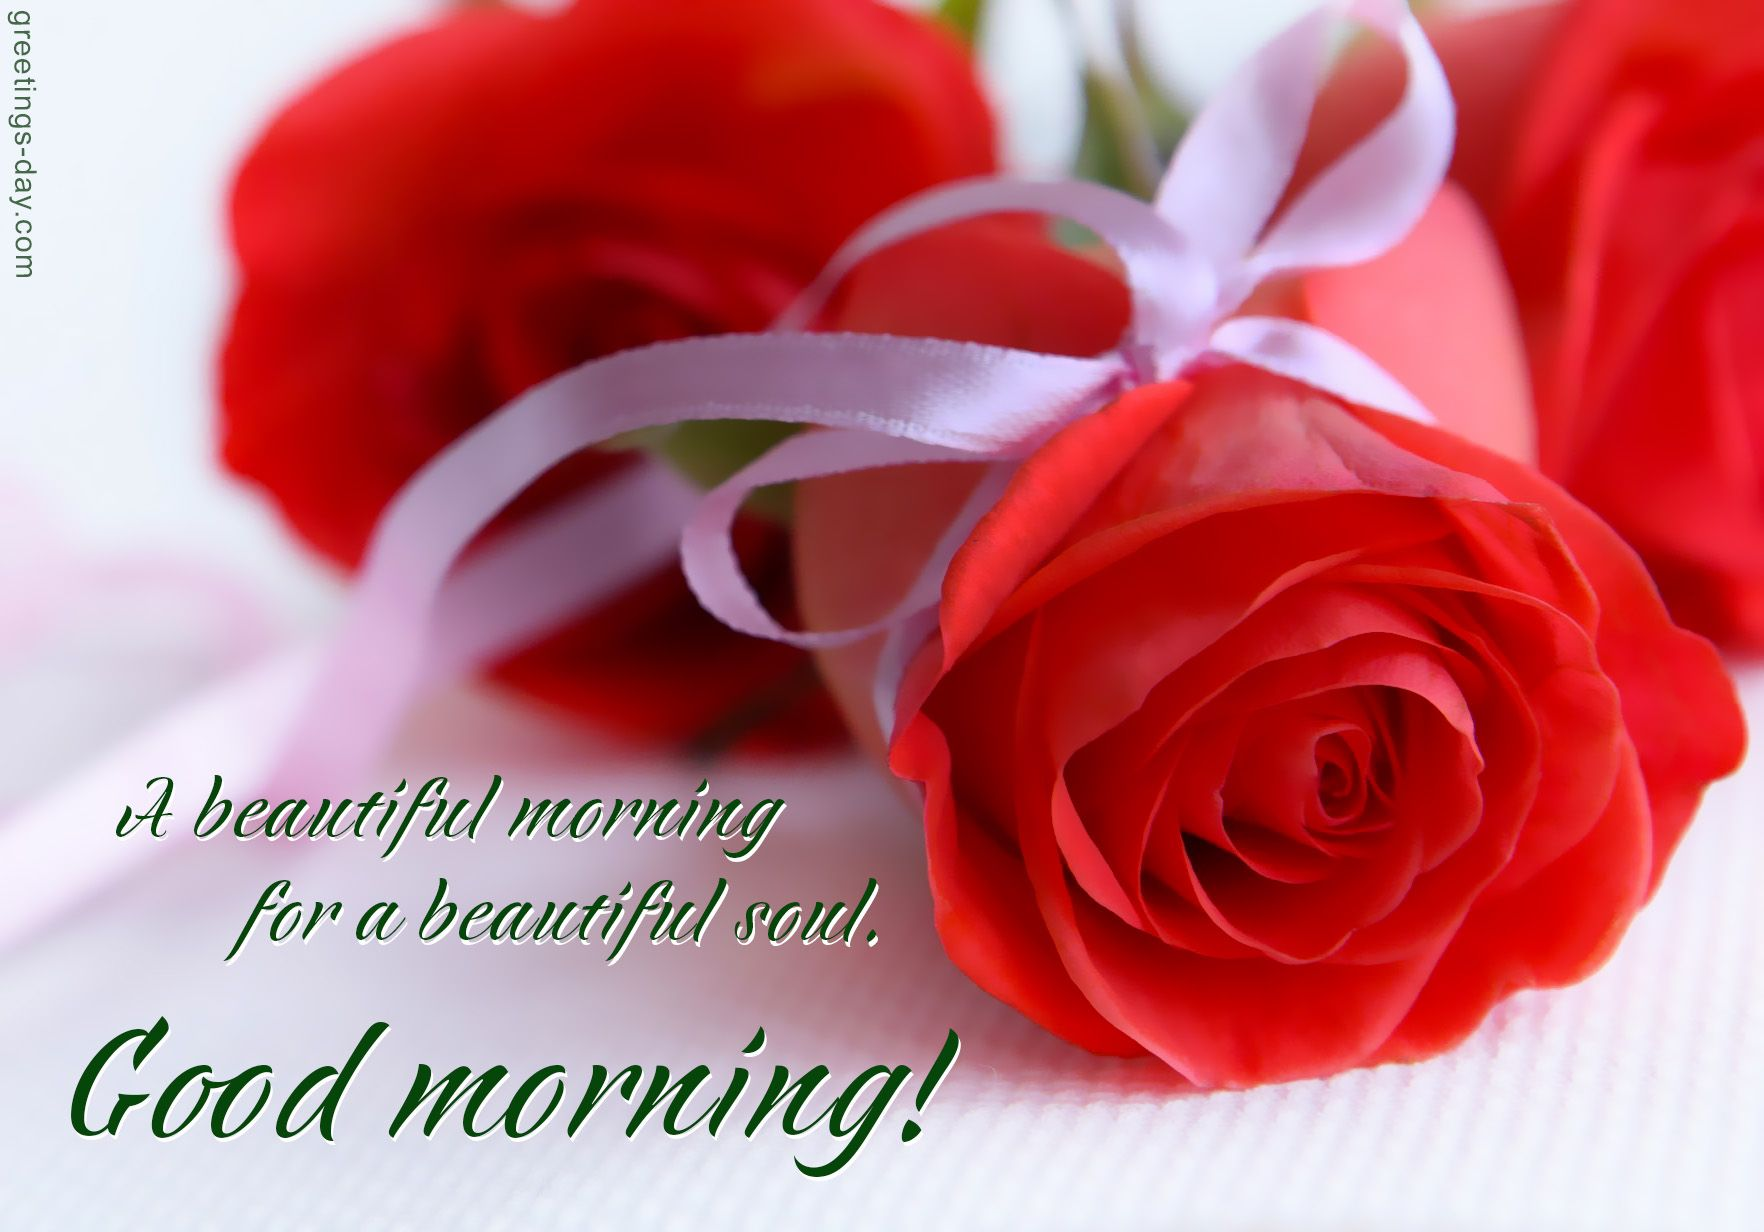 Pin by lina ares on good morning pictures pinterest morning pictures a beautiful morning for a beautiful souleetings wishes messages in images for sharing on social networks for loved ones friends izmirmasajfo